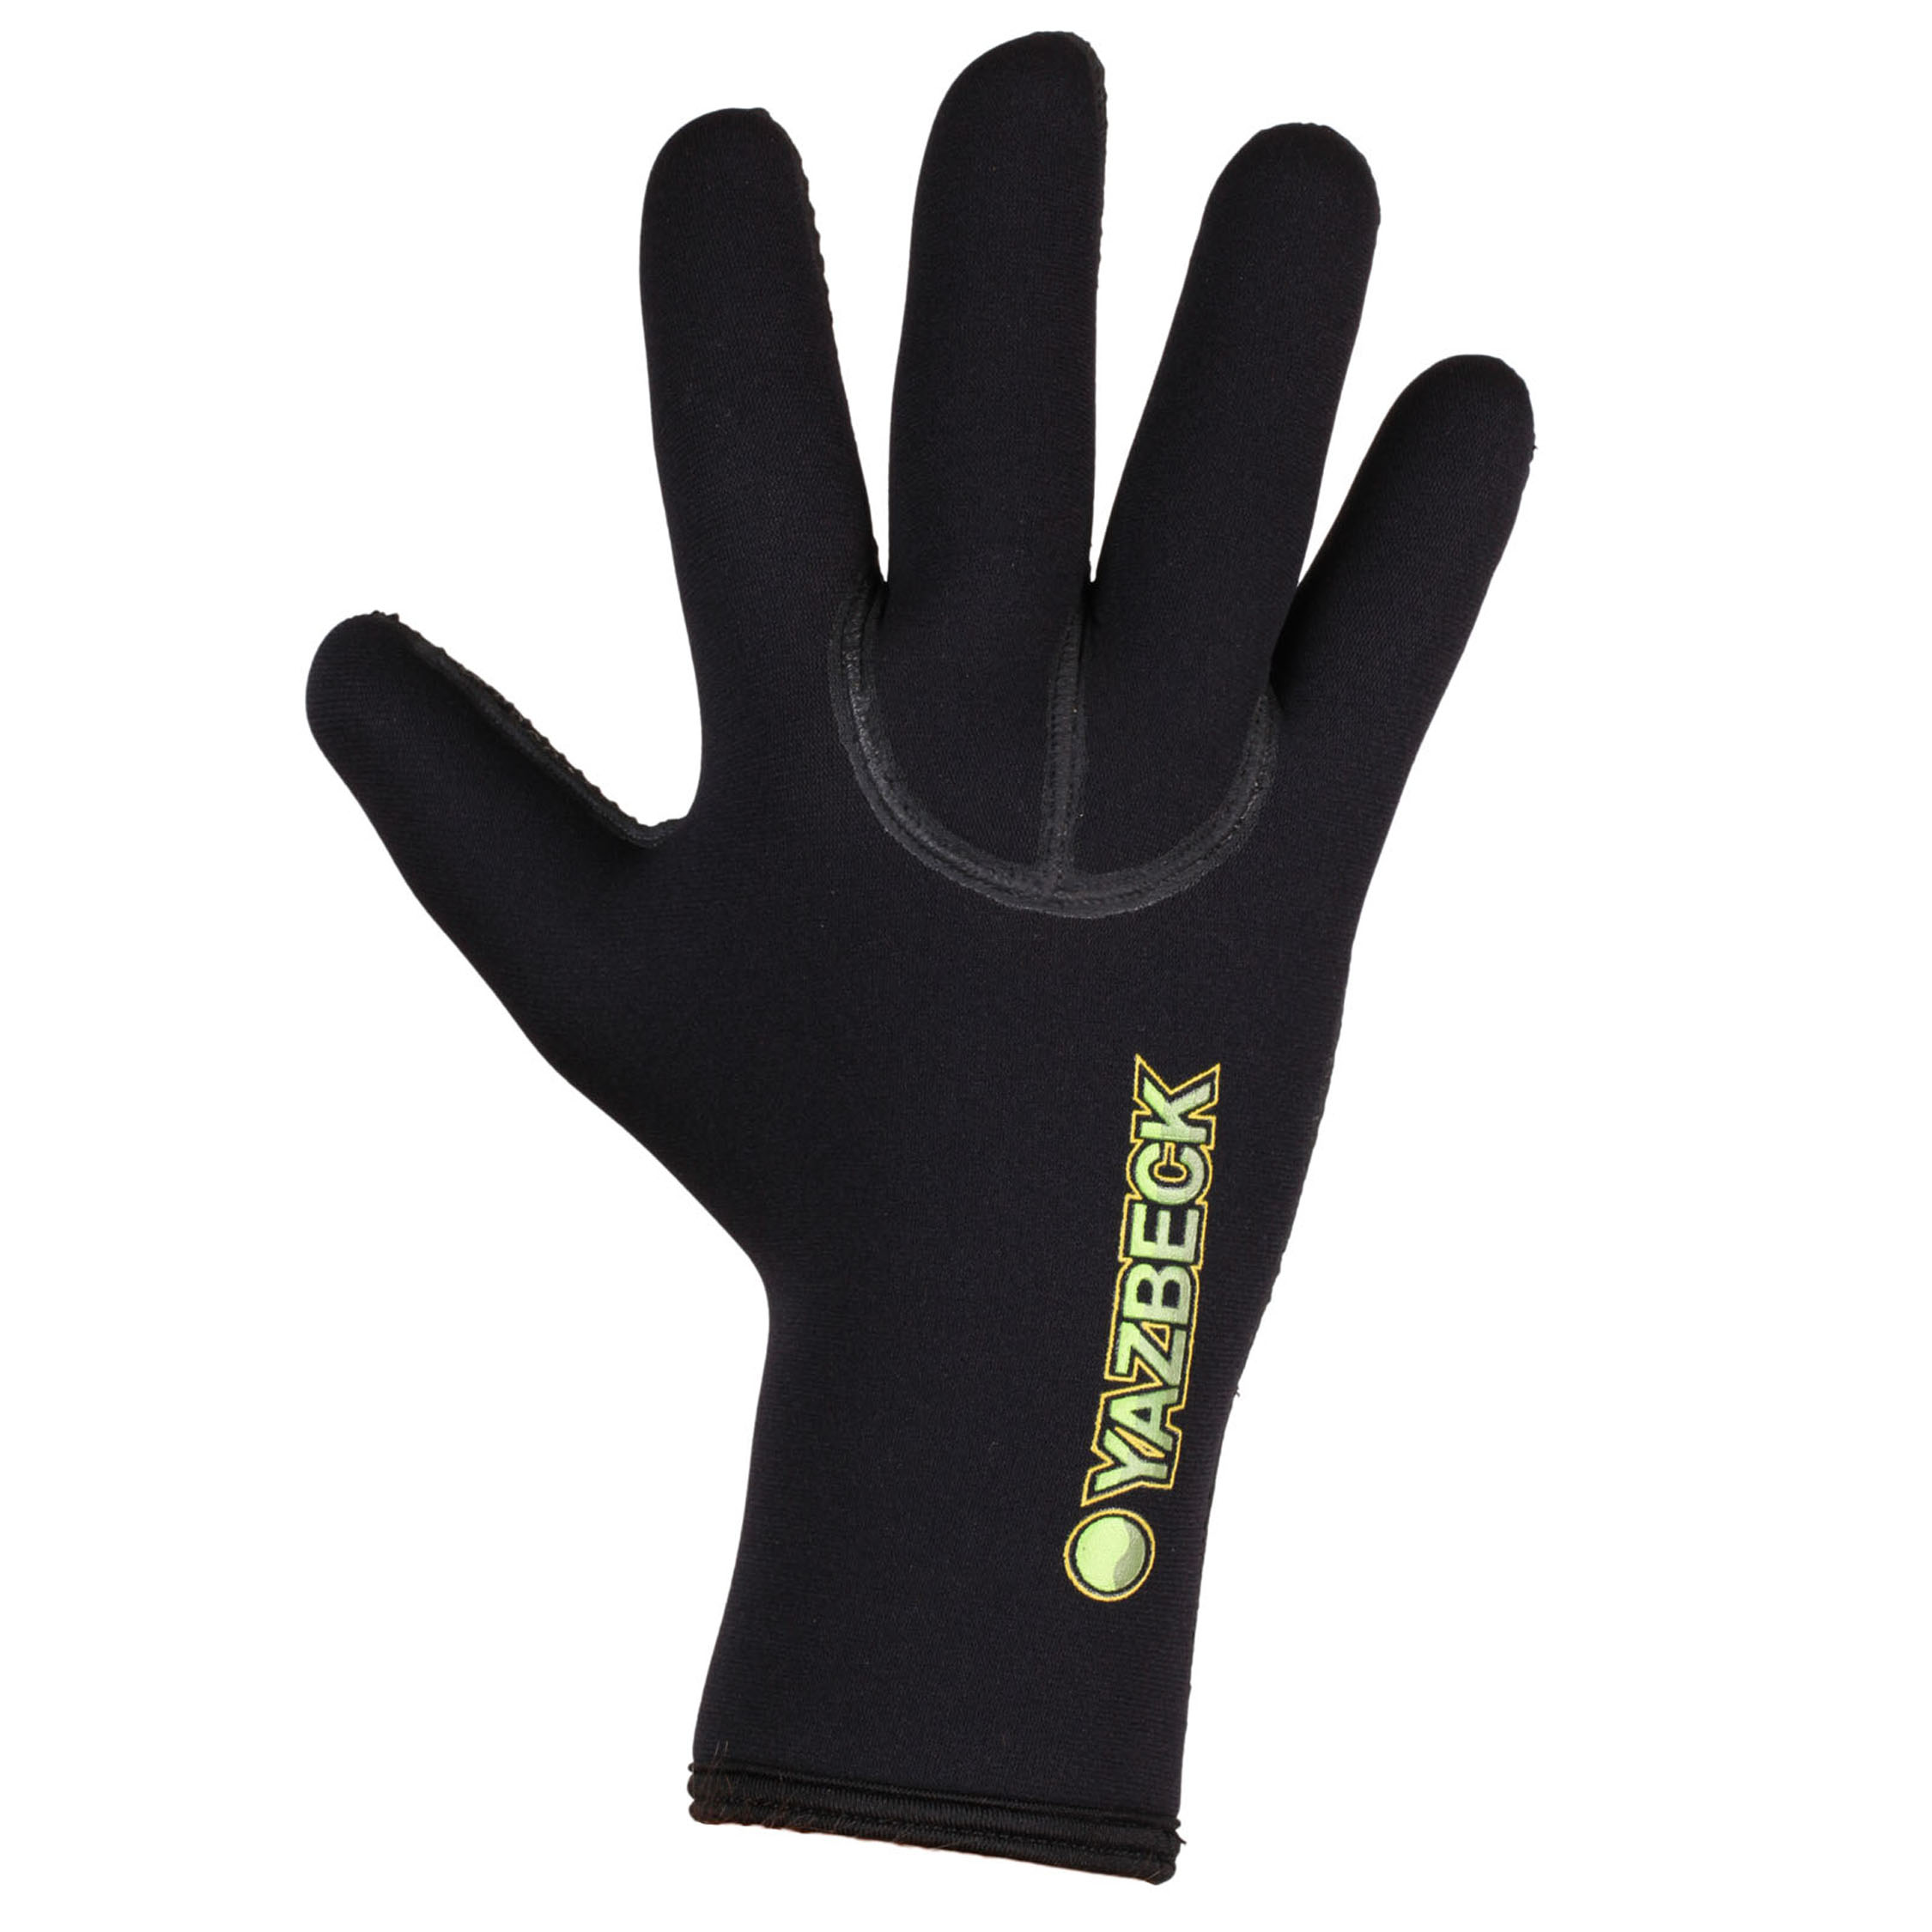 Yazbeck-ALLBLACK-Thermoflex-Titanium-Gloves-3mm-Spearfishing